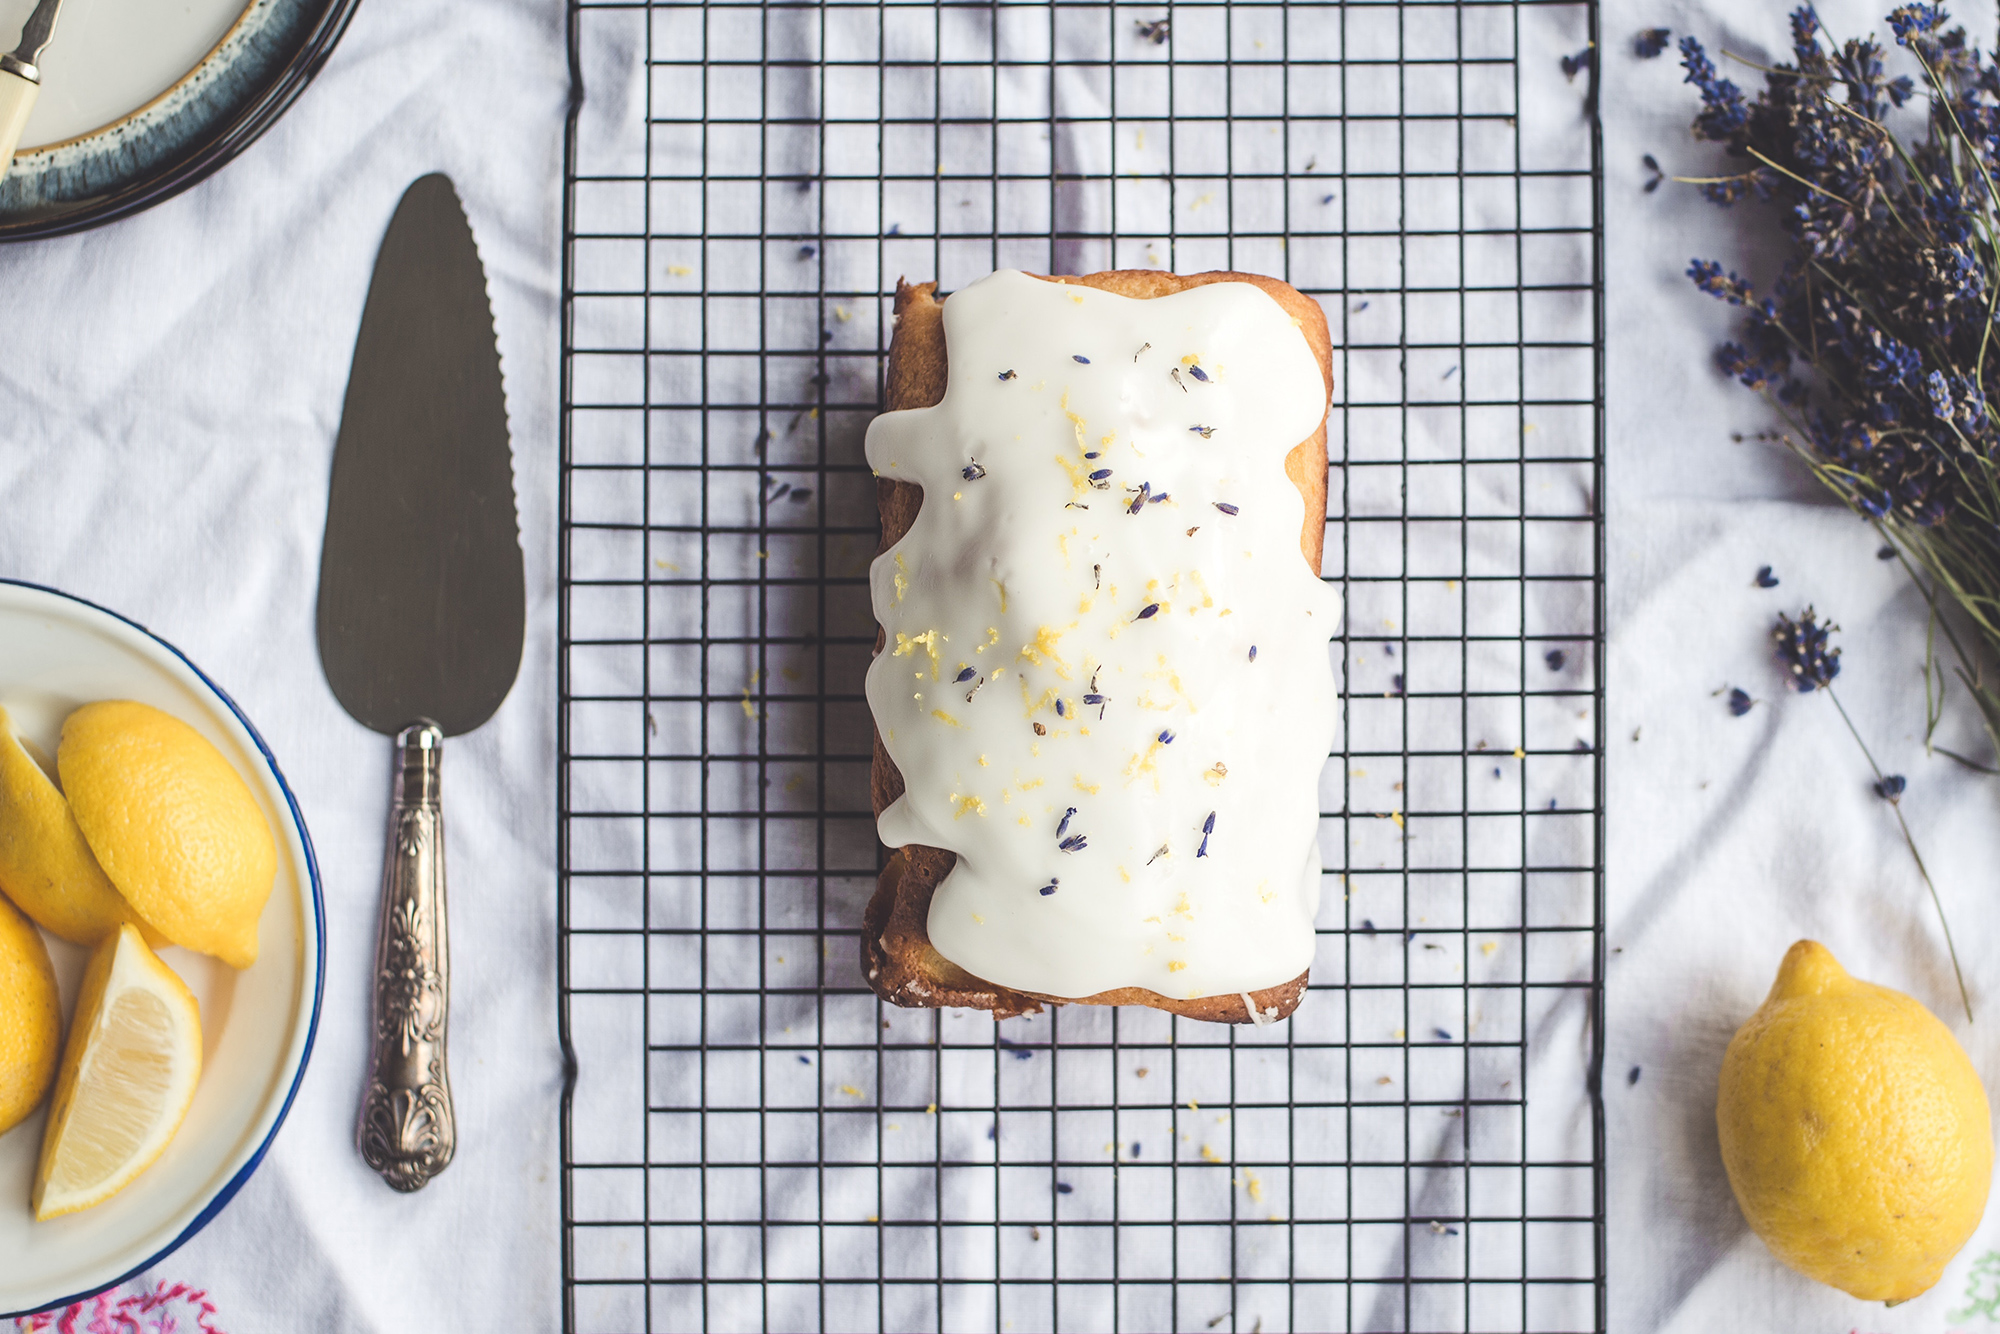 lemon cake with sprinkles and frosting